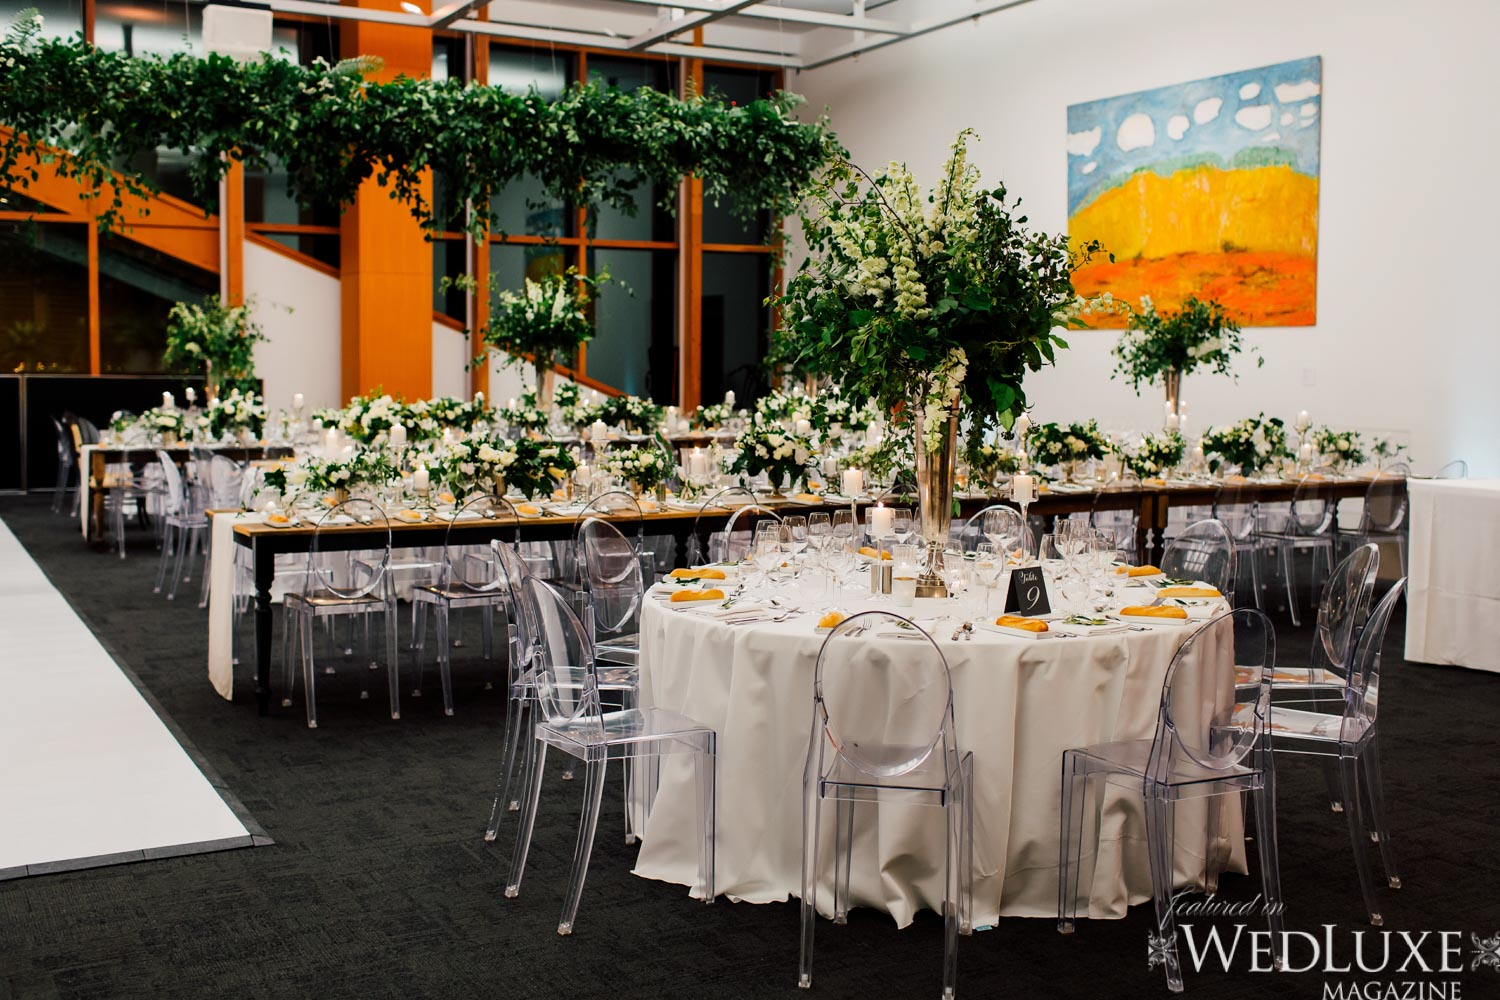 Decor and Rentals - Marvelle Events and Detailz